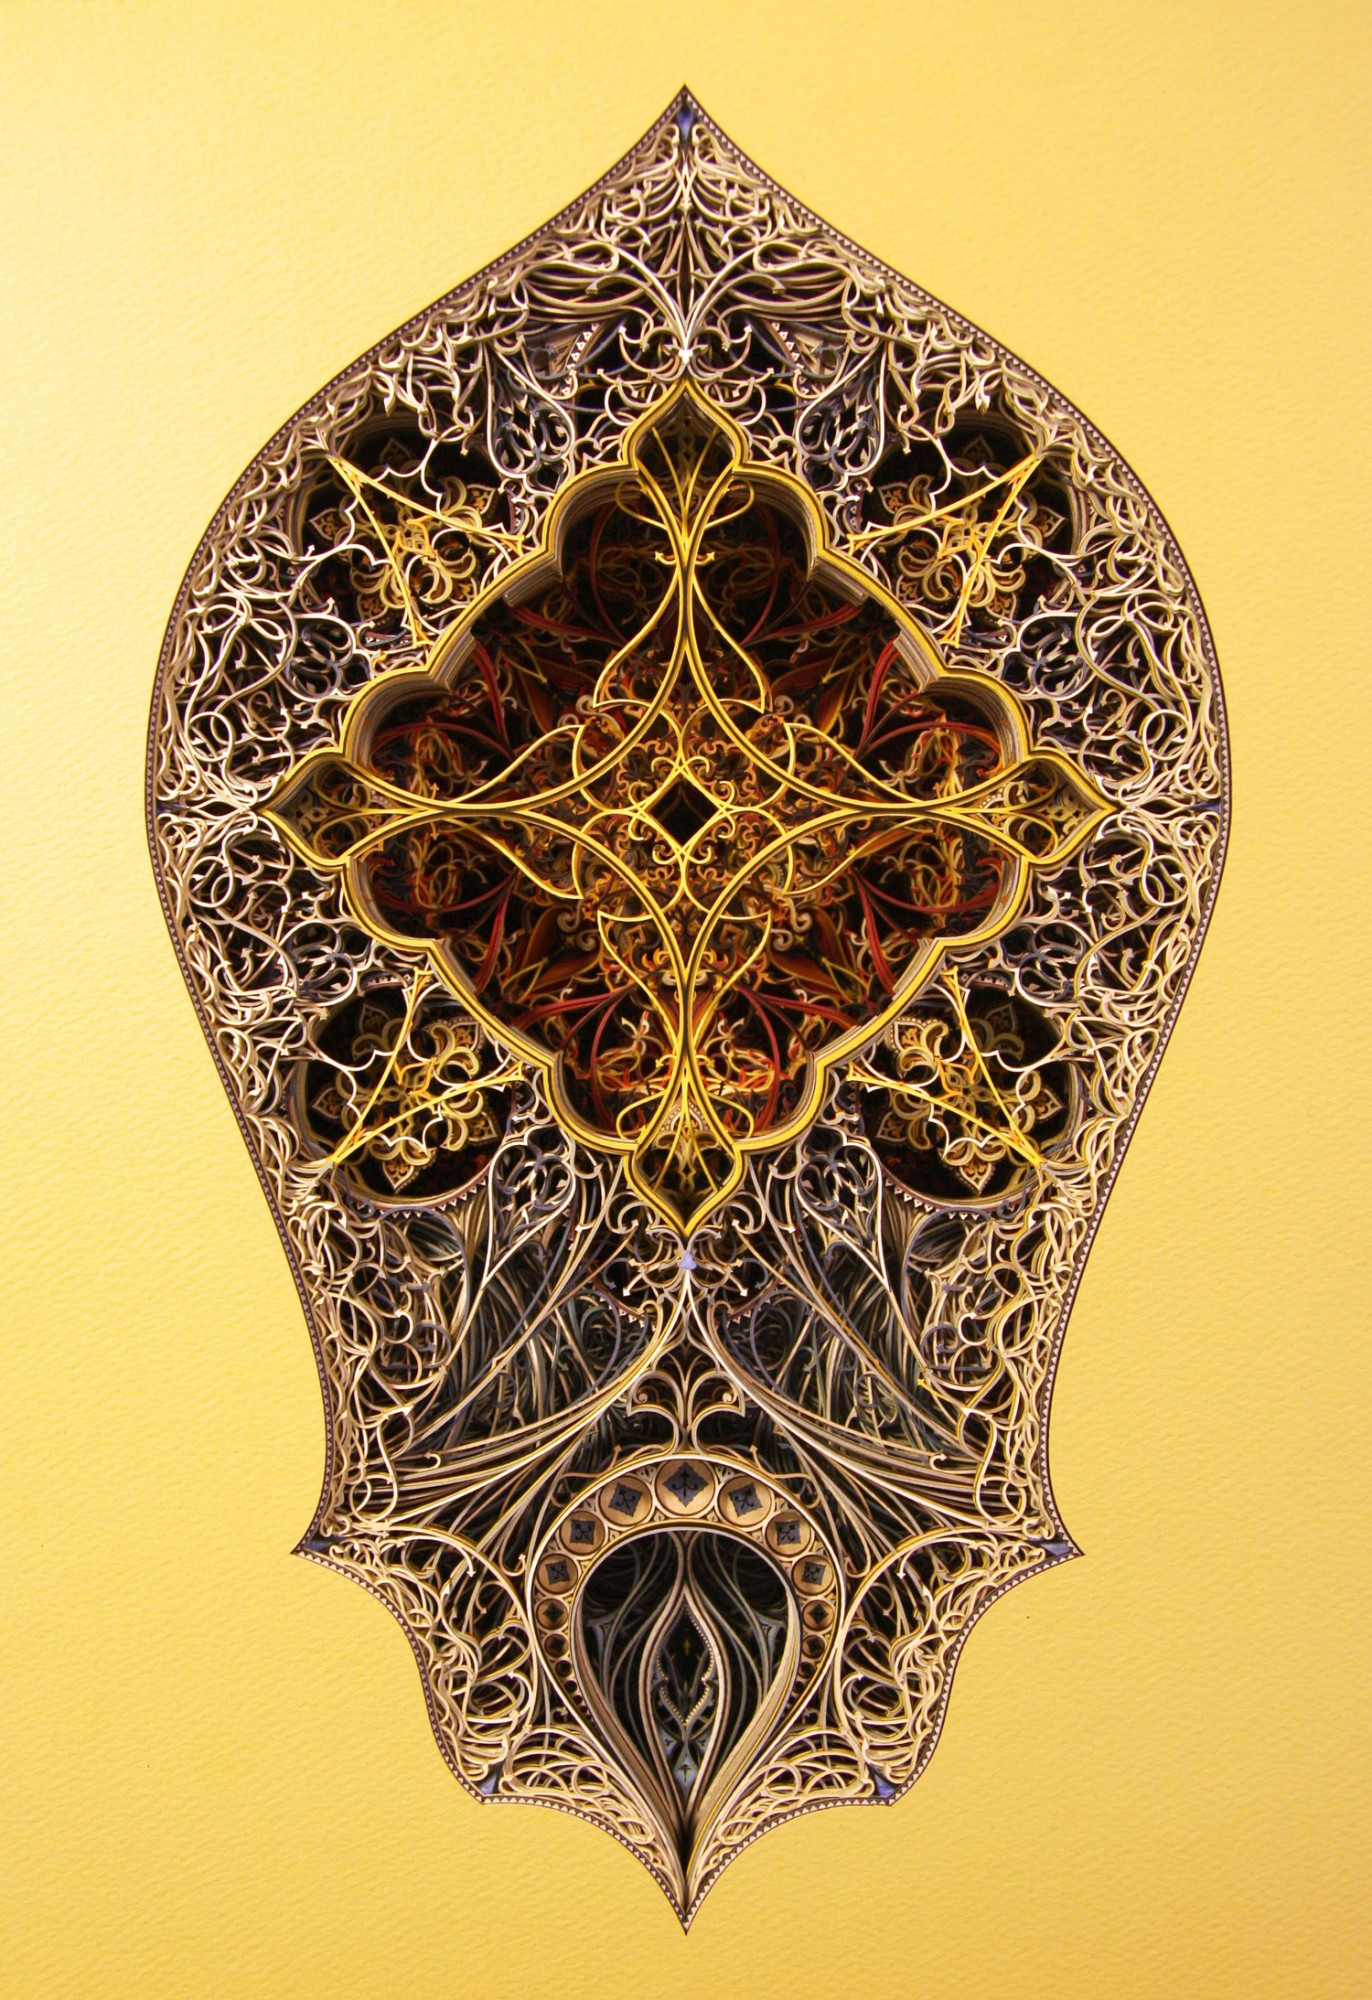 New Intricate Stained Glass Windows from Colorful Laser Cut Paper (Video) - Arch 6